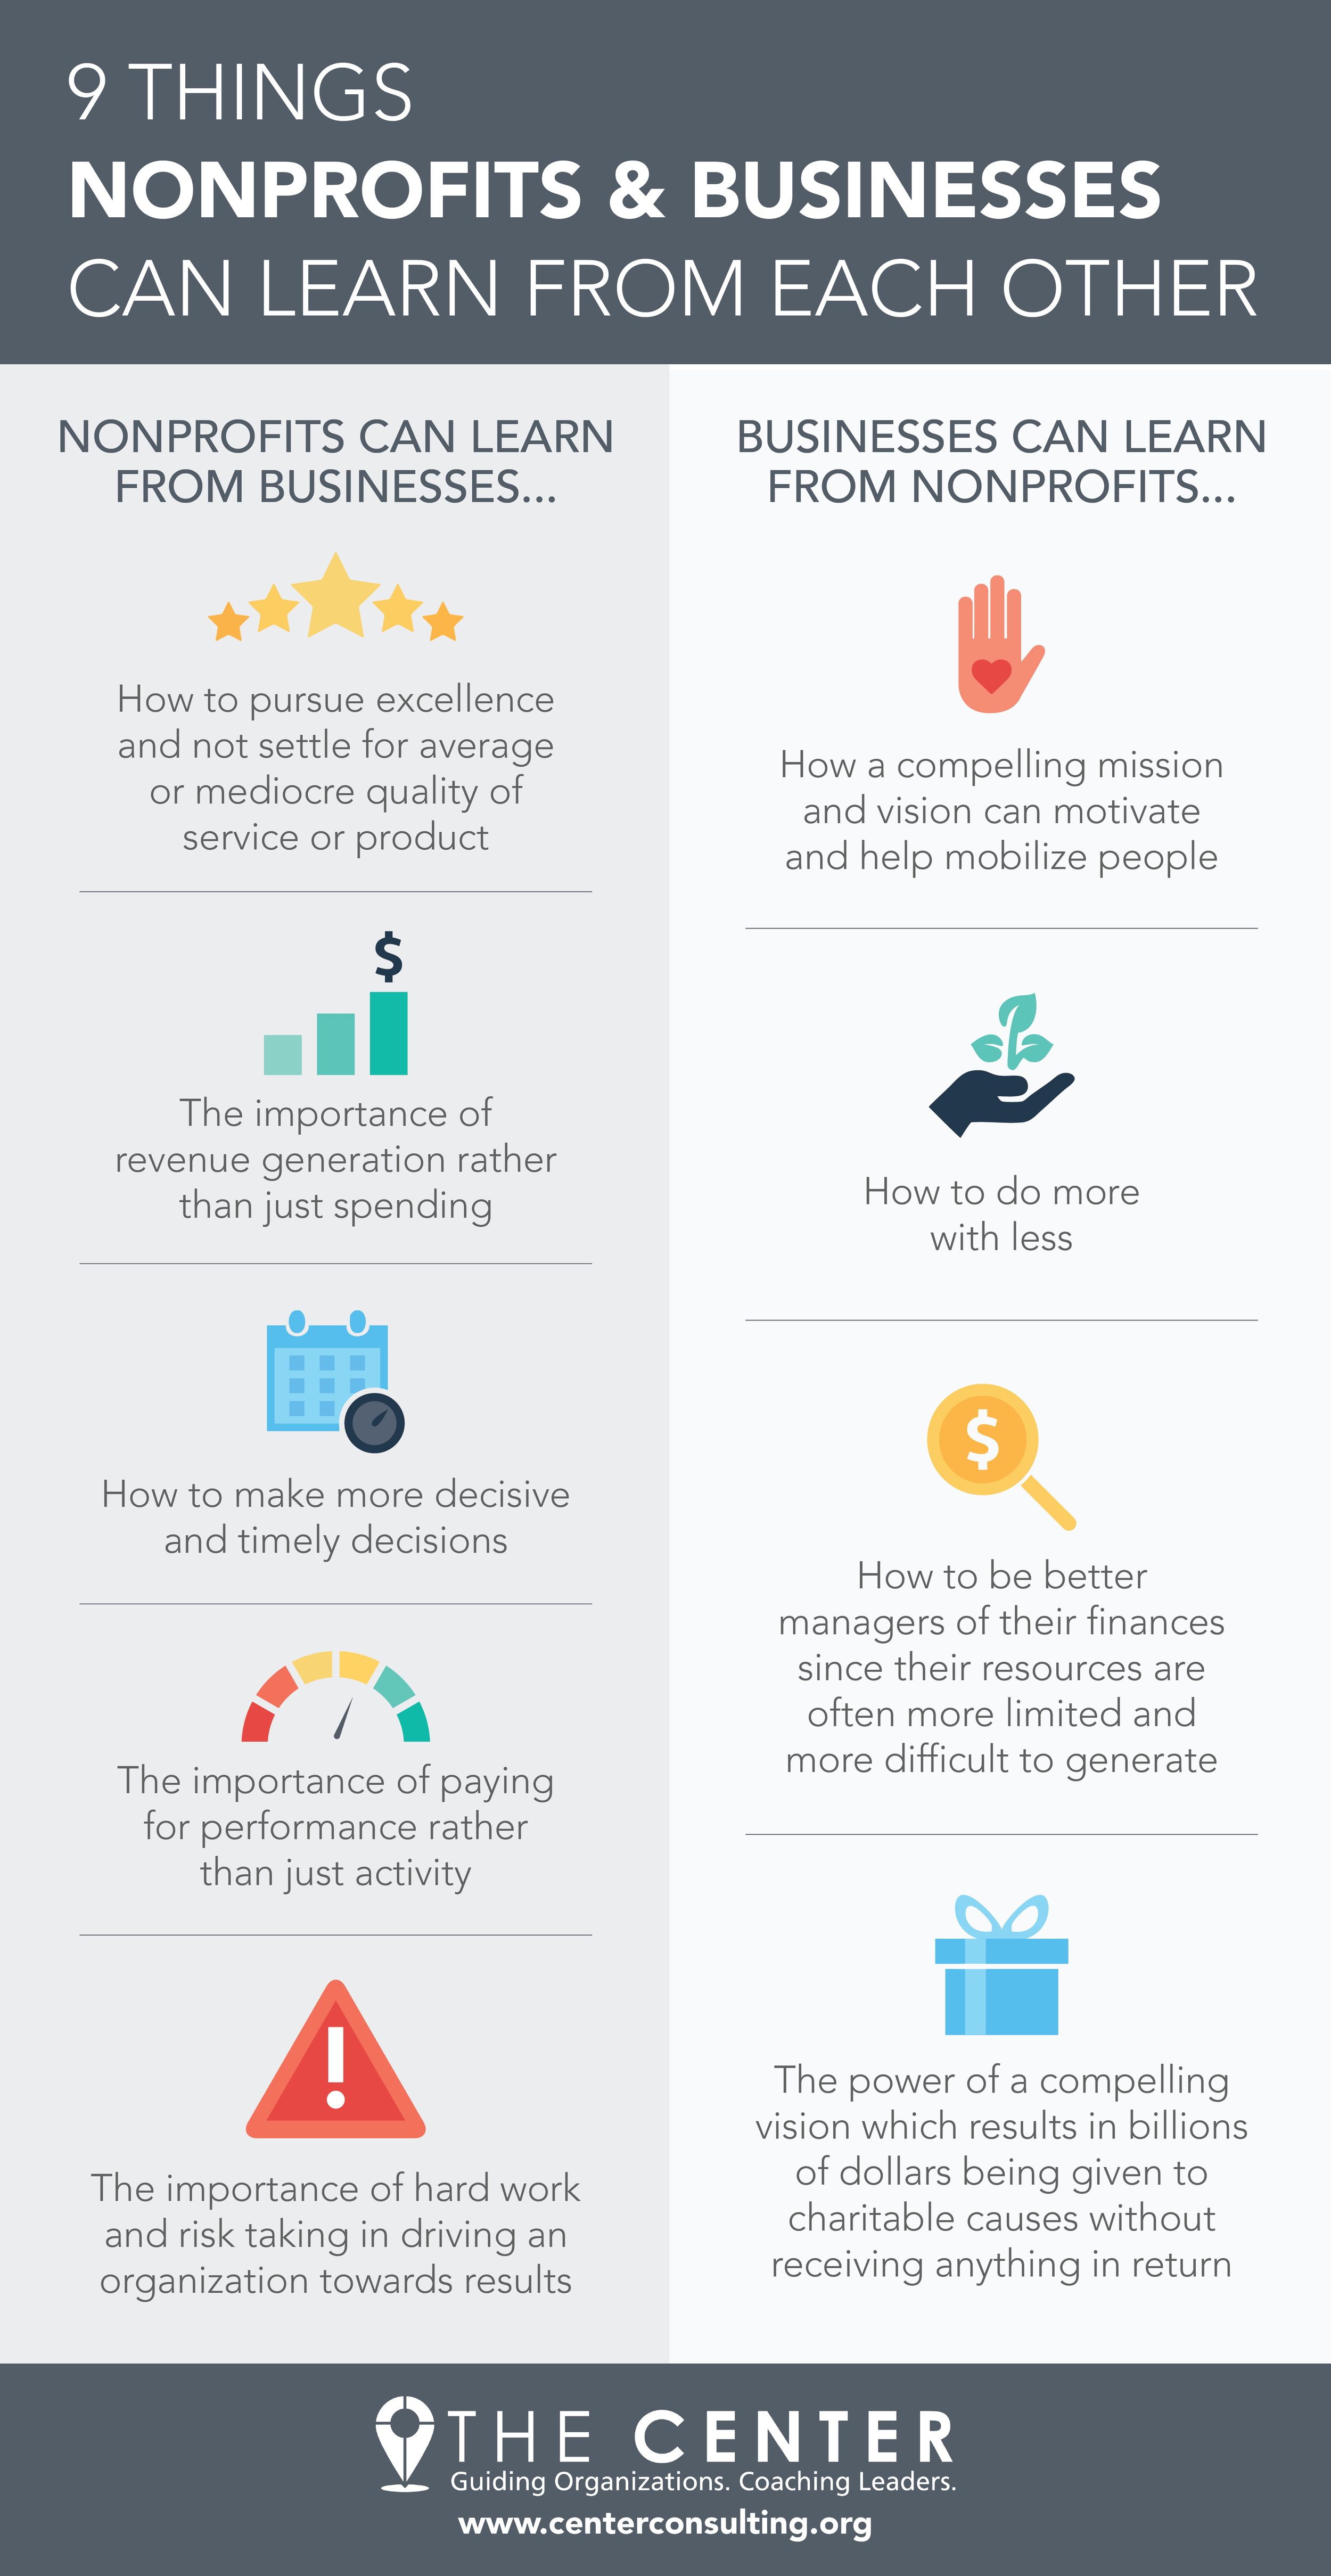 What Nonprofits and Businesses Can Learn from Each Other infographic - The Center Consulting Group - Leadership Coaching and Consulting for Businesses, Churches, and Non-Profits